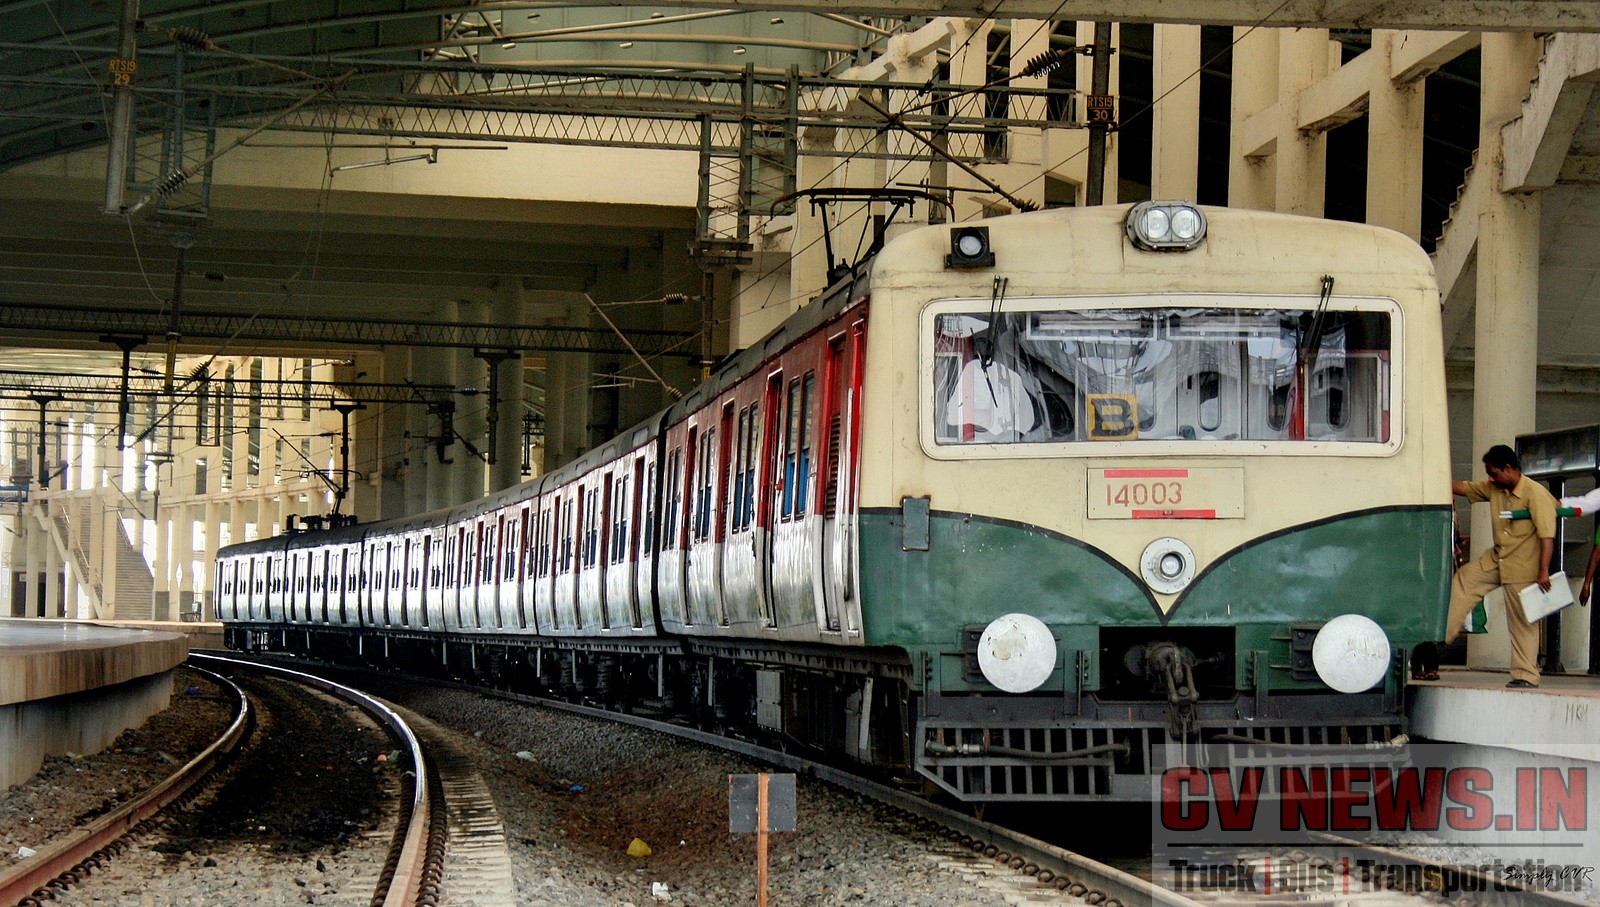 Chennai MRTS, which is operating without any feeder services is still under utilised.